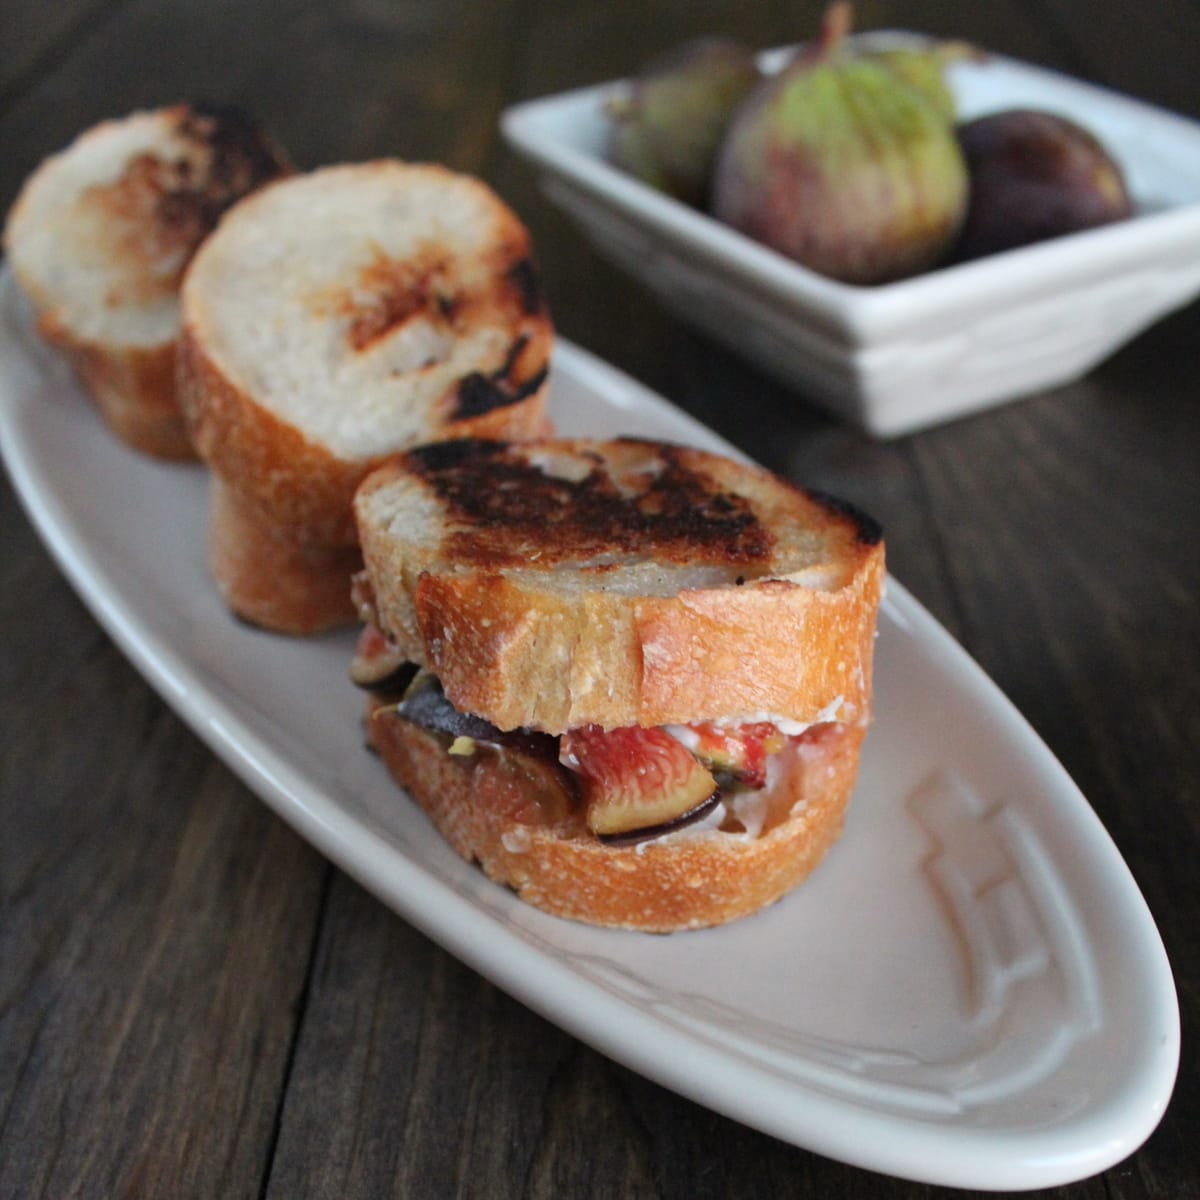 ... honey and paired with goat cheese in this decadent grilled cheese